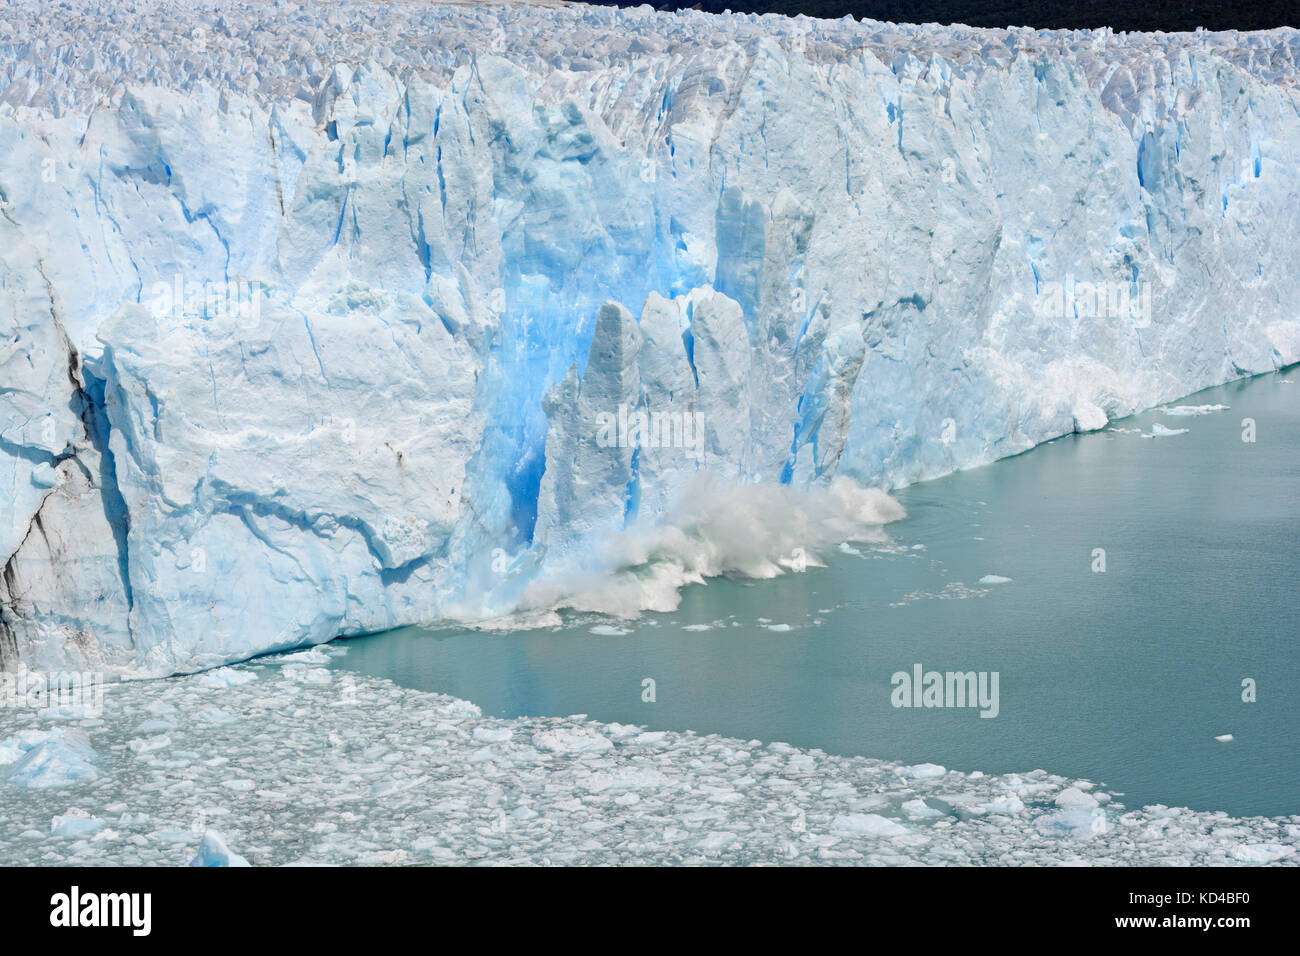 Ice Calving off of the Perito Moreno Glacier in Los Glaciares National Park in Argentina - Stock Image